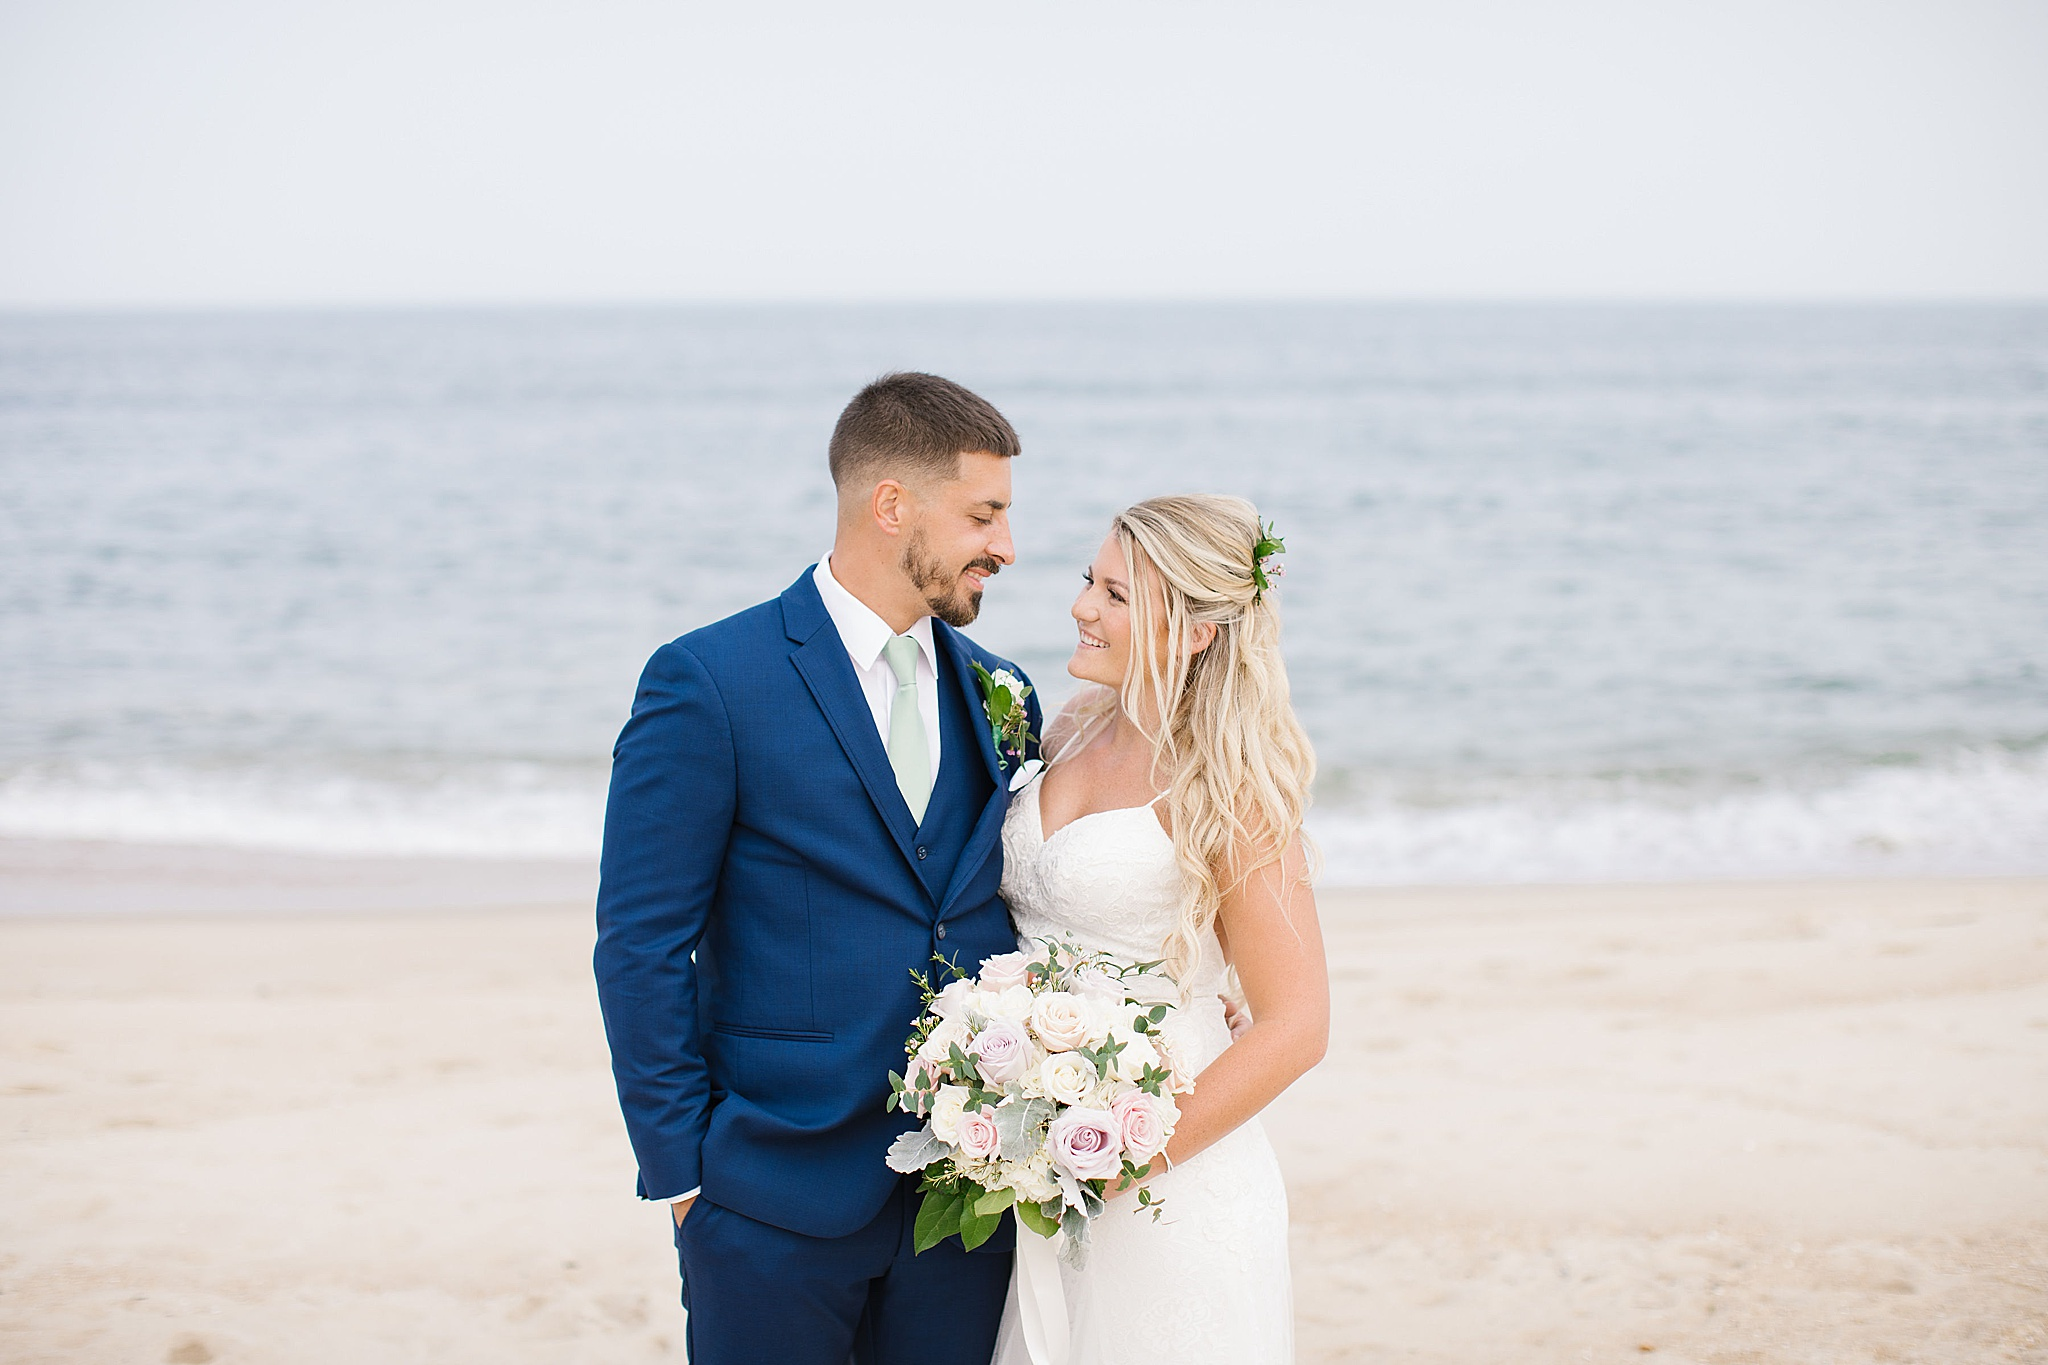 Ashley Mac Photographs | Spring Lake Bath & Tennis Club wedding | Spring Lake NJ wedding | NJ wedding day | NJ wedding photographer | New Jersey wedding day | New Jersey wedding photographer | Spring Lake New Jersey wedding day | Navy and sage wedding inspiration | NY wedding photographer